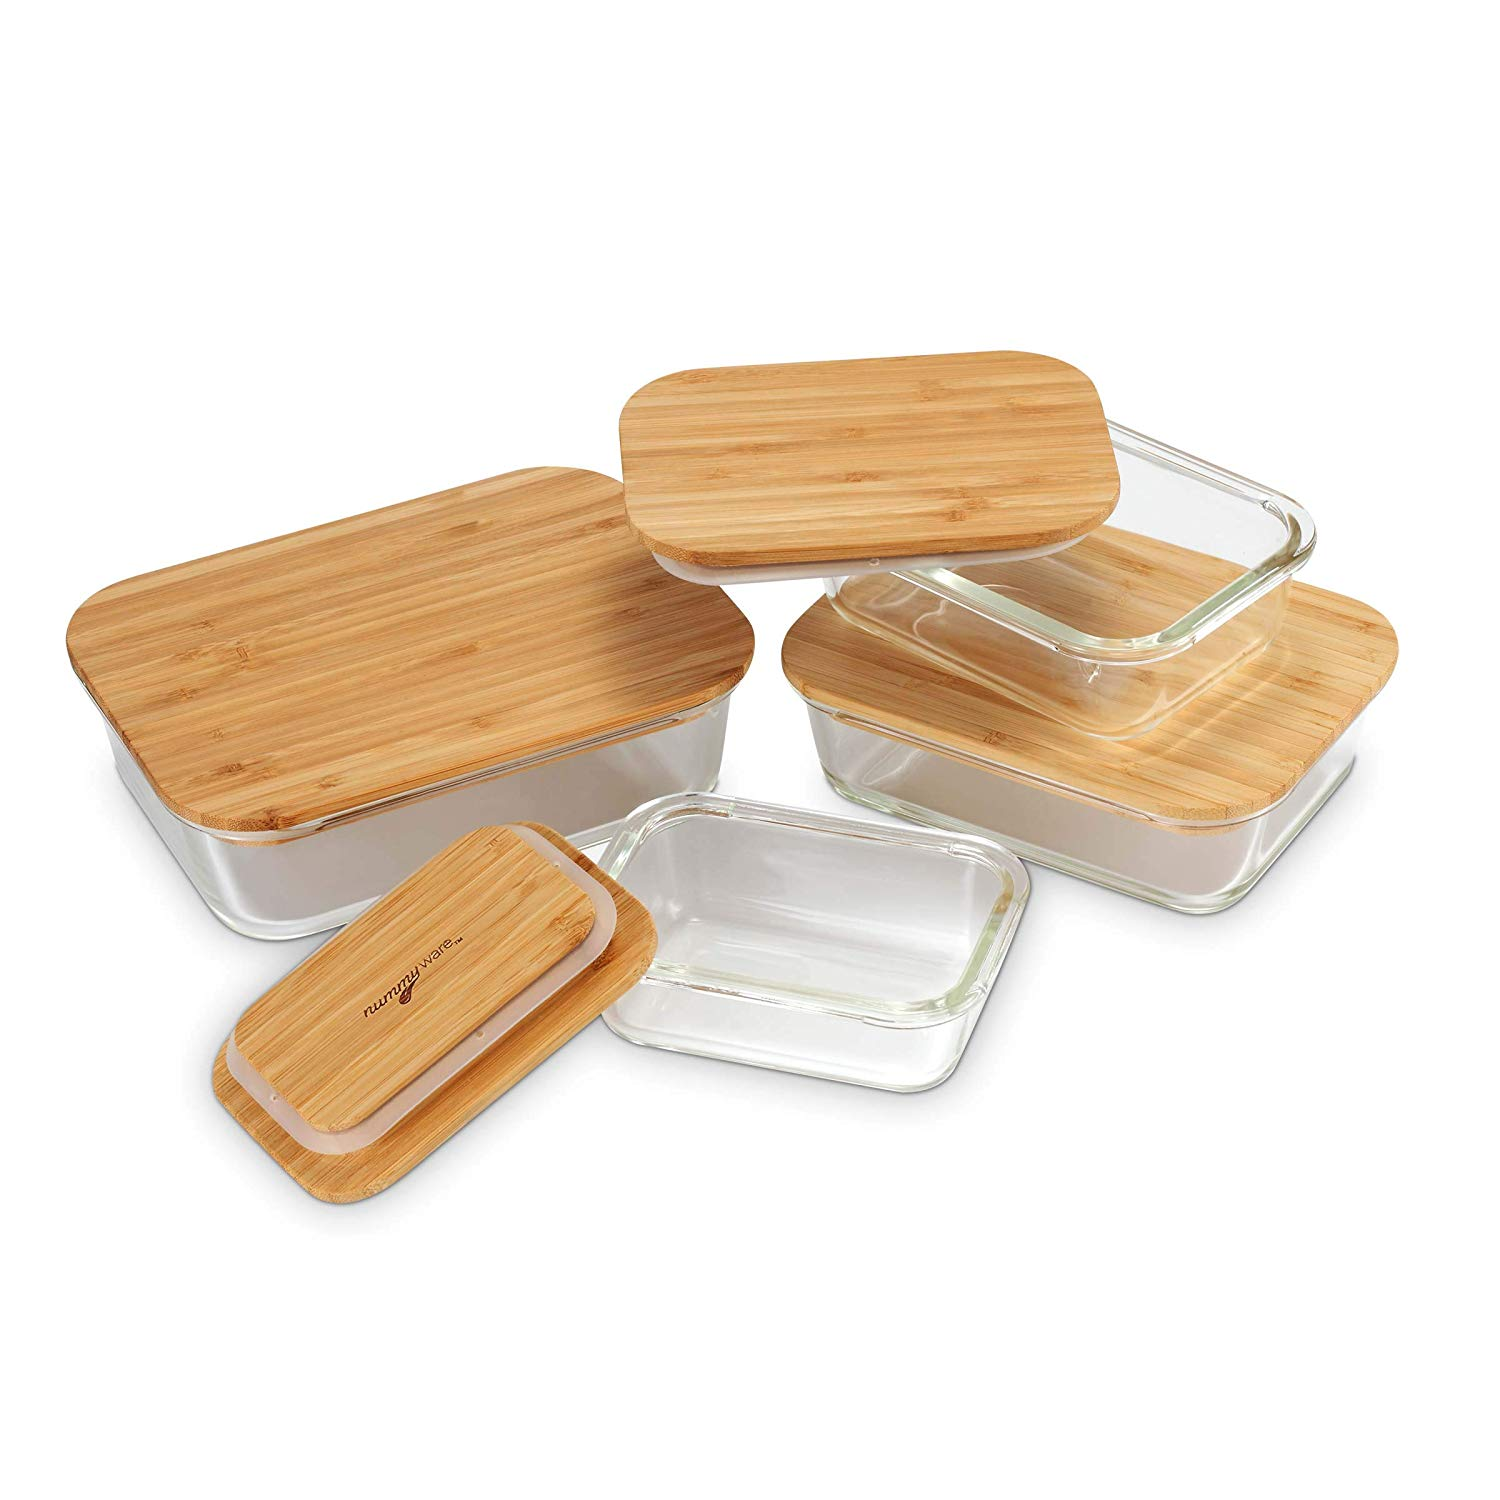 Plastic-free Glass Food Containers with Sustainable Bamboo Tops (Set of 4:  370mL, 640mL, 1040mL, 1520mL)